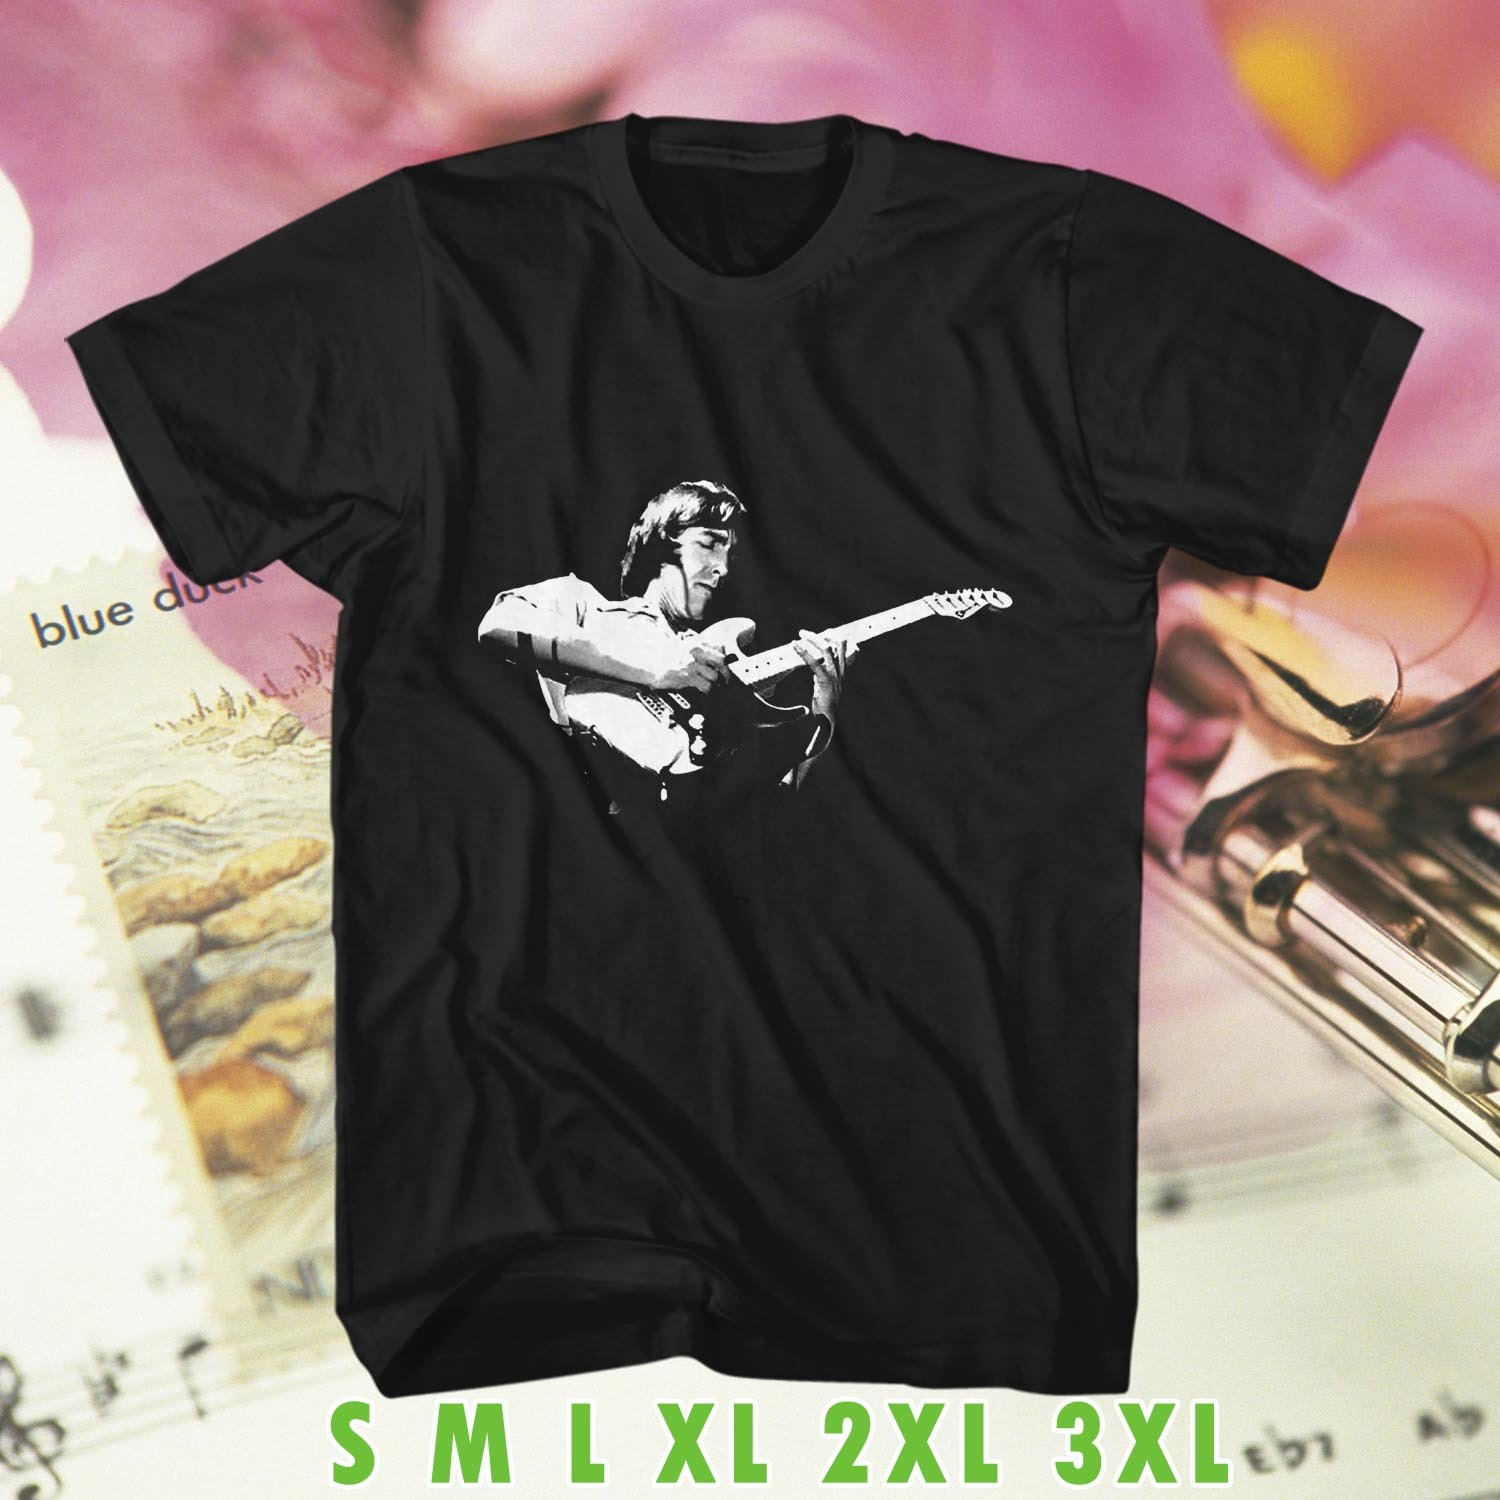 Tributte to Allan Holdsworth Art Black Tee's  Front Side by Complexart c1